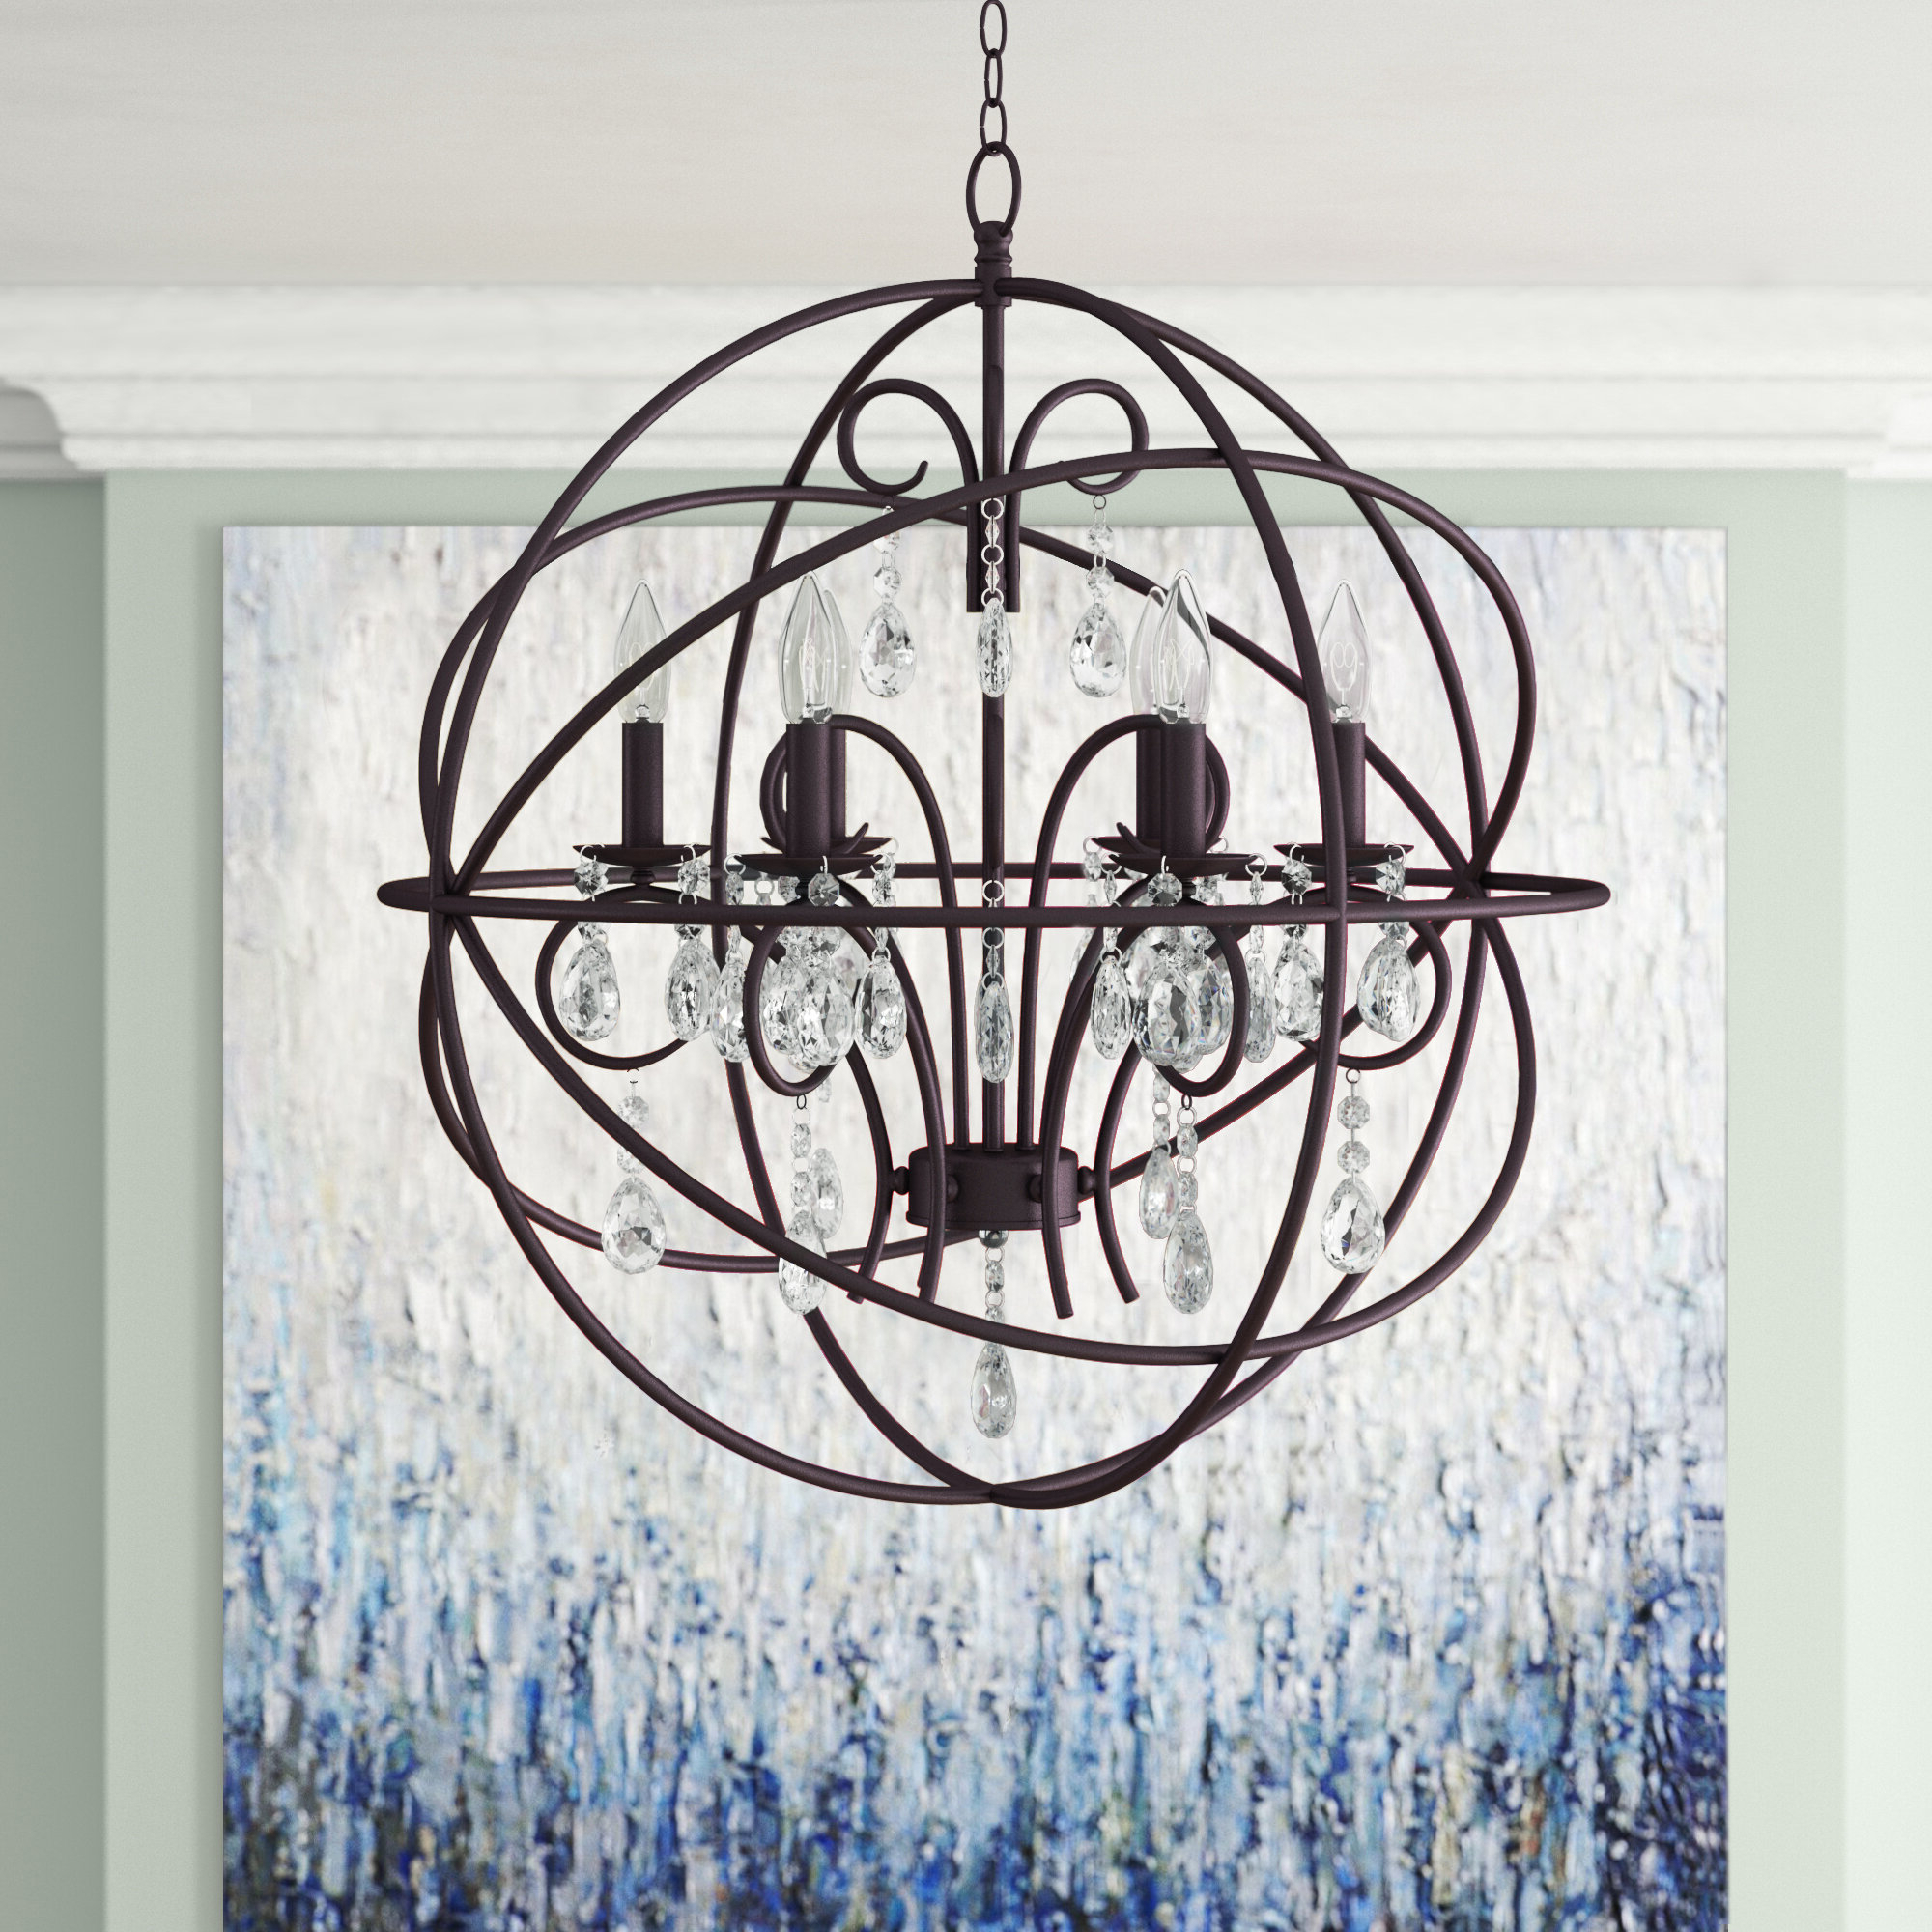 Best And Newest Alden 6 Light Globe Chandelier Throughout Joon 6 Light Globe Chandeliers (View 3 of 20)